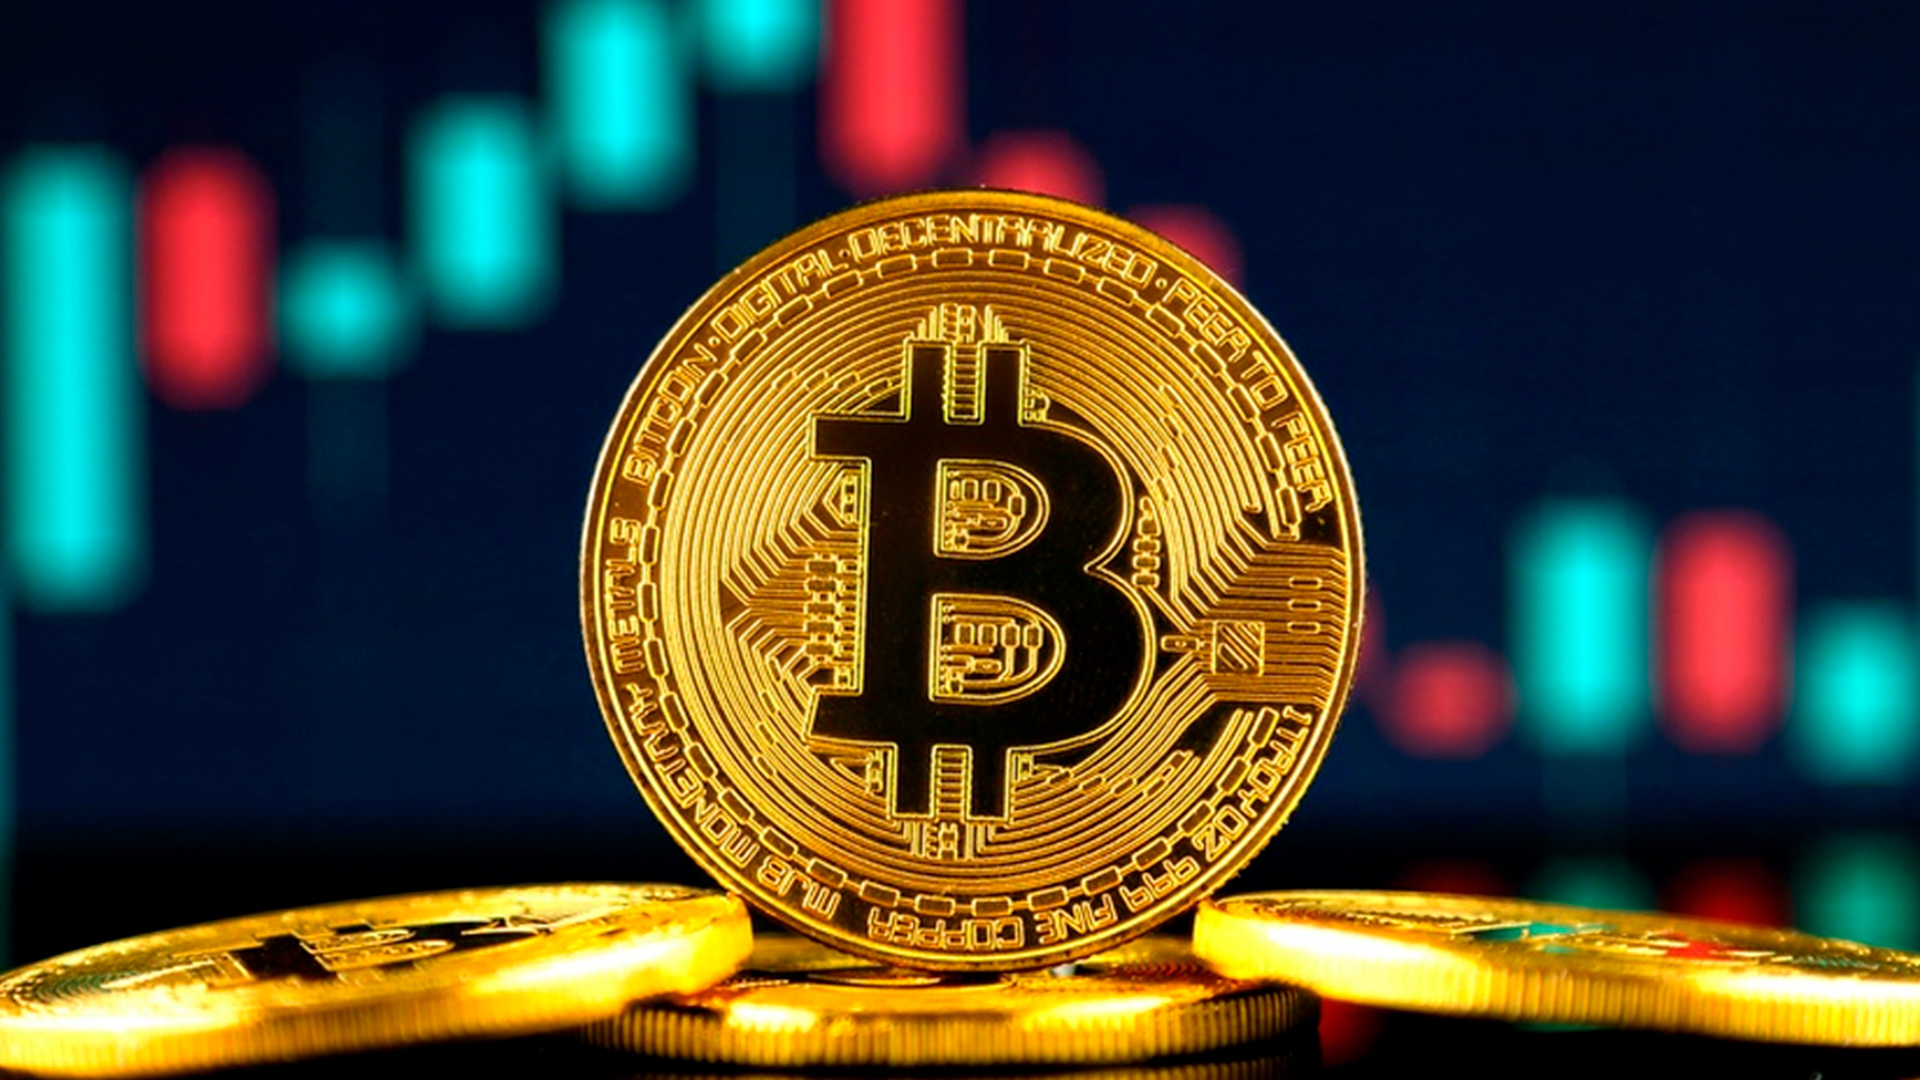 What Cryptocurrency Should I Buy? Read Advice from the Experts